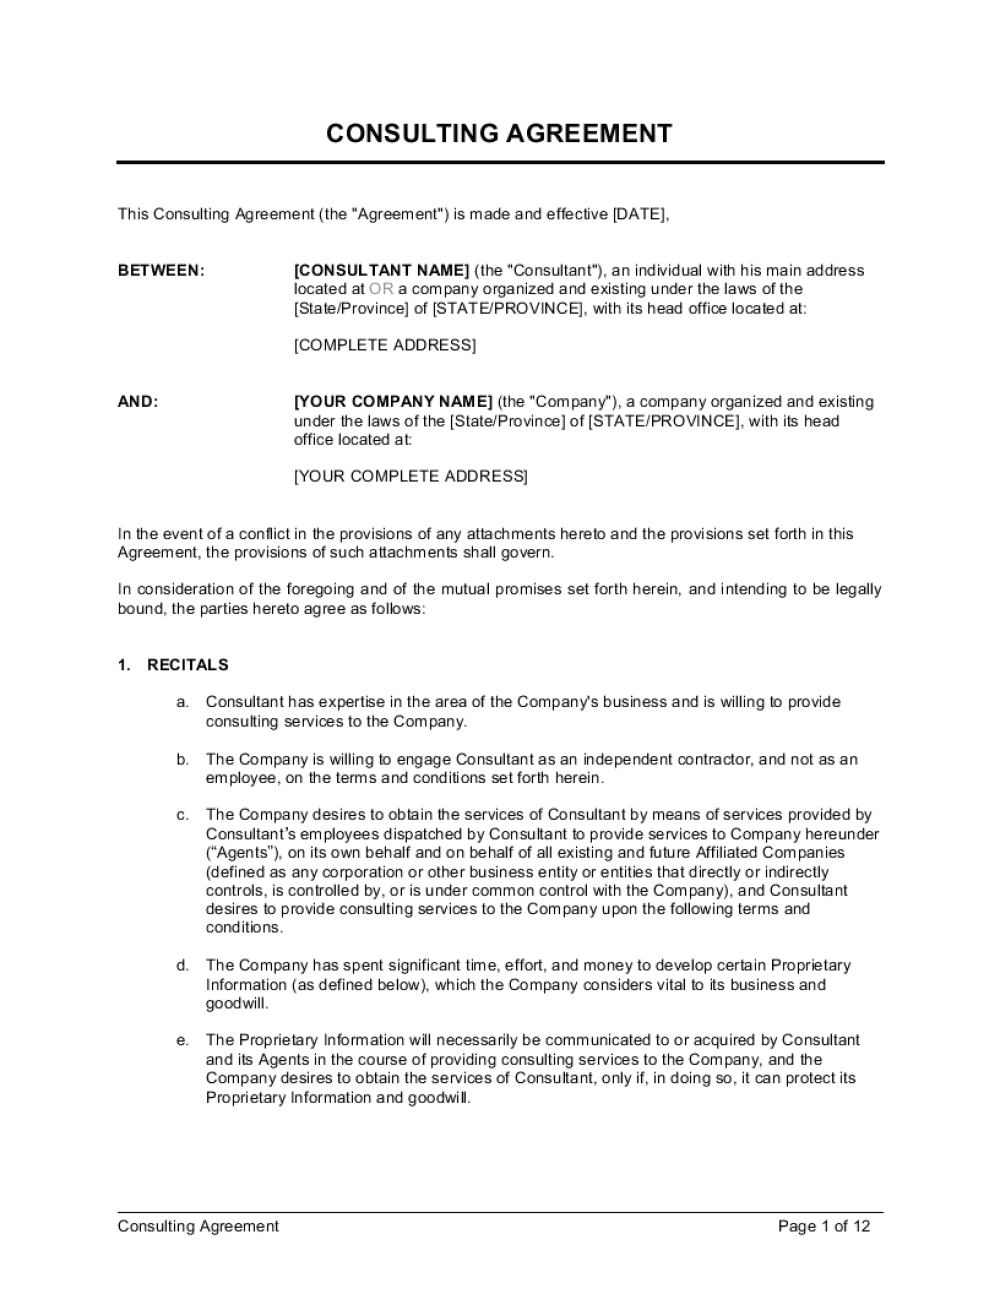 Business-in-a-Box's Consulting Agreement Long Template